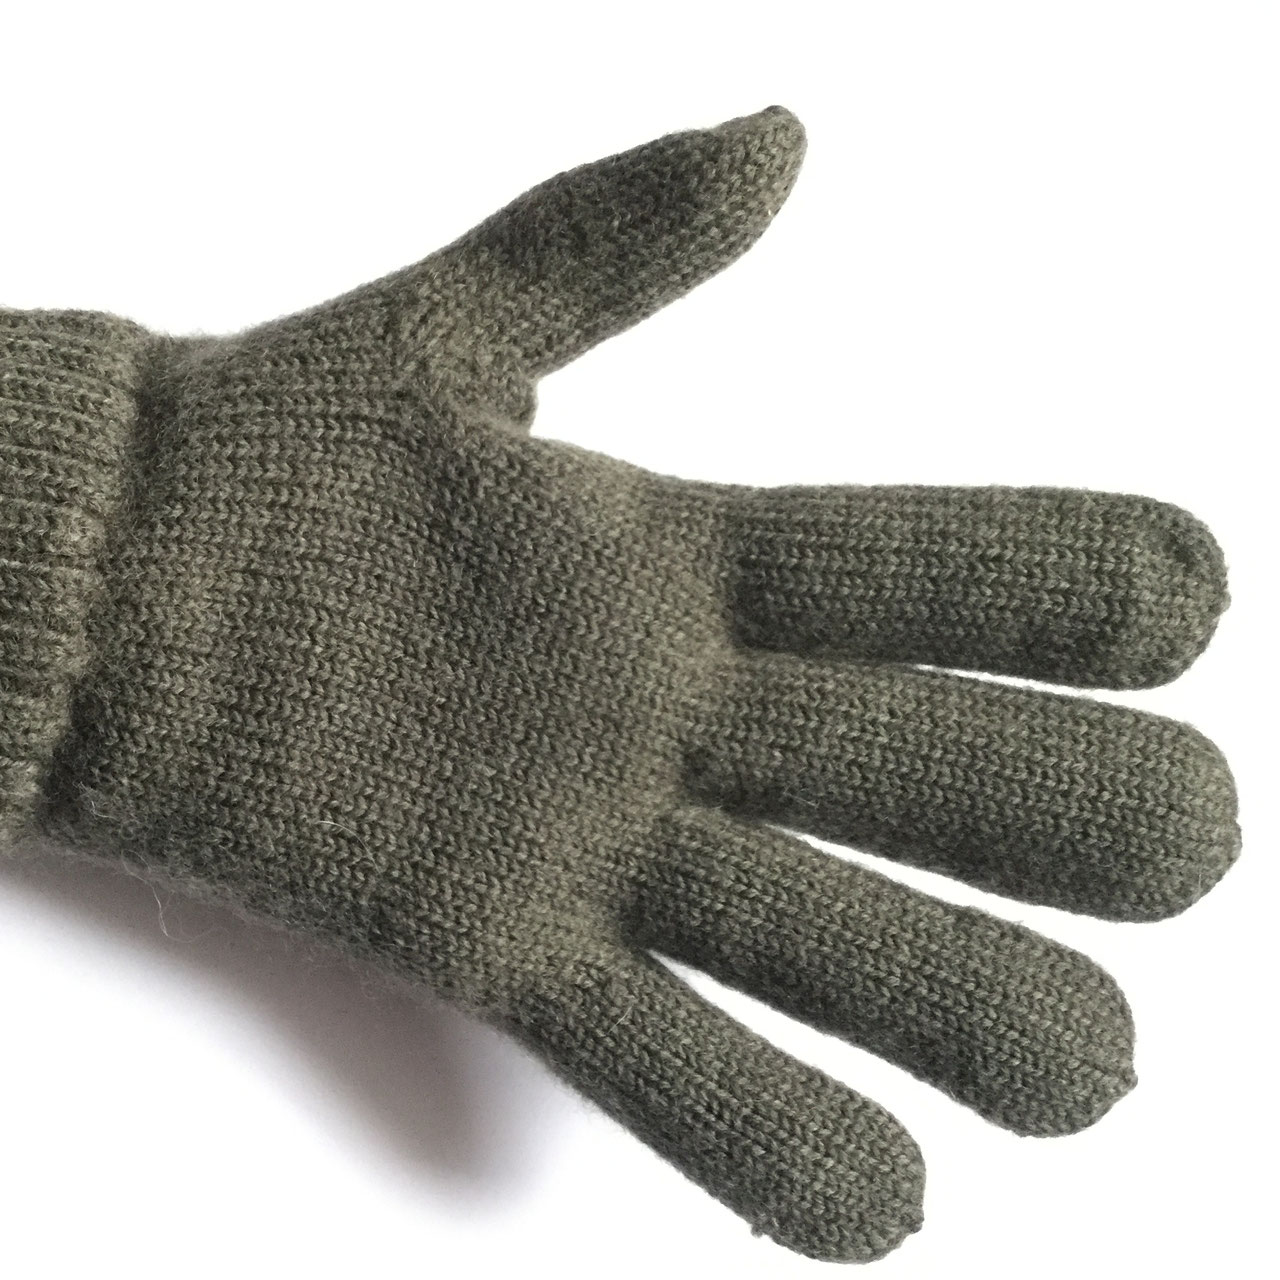 8898847a956 100% wool gloves from austria in military green. Dachstein Woolwear  Military Cuffed Gloves